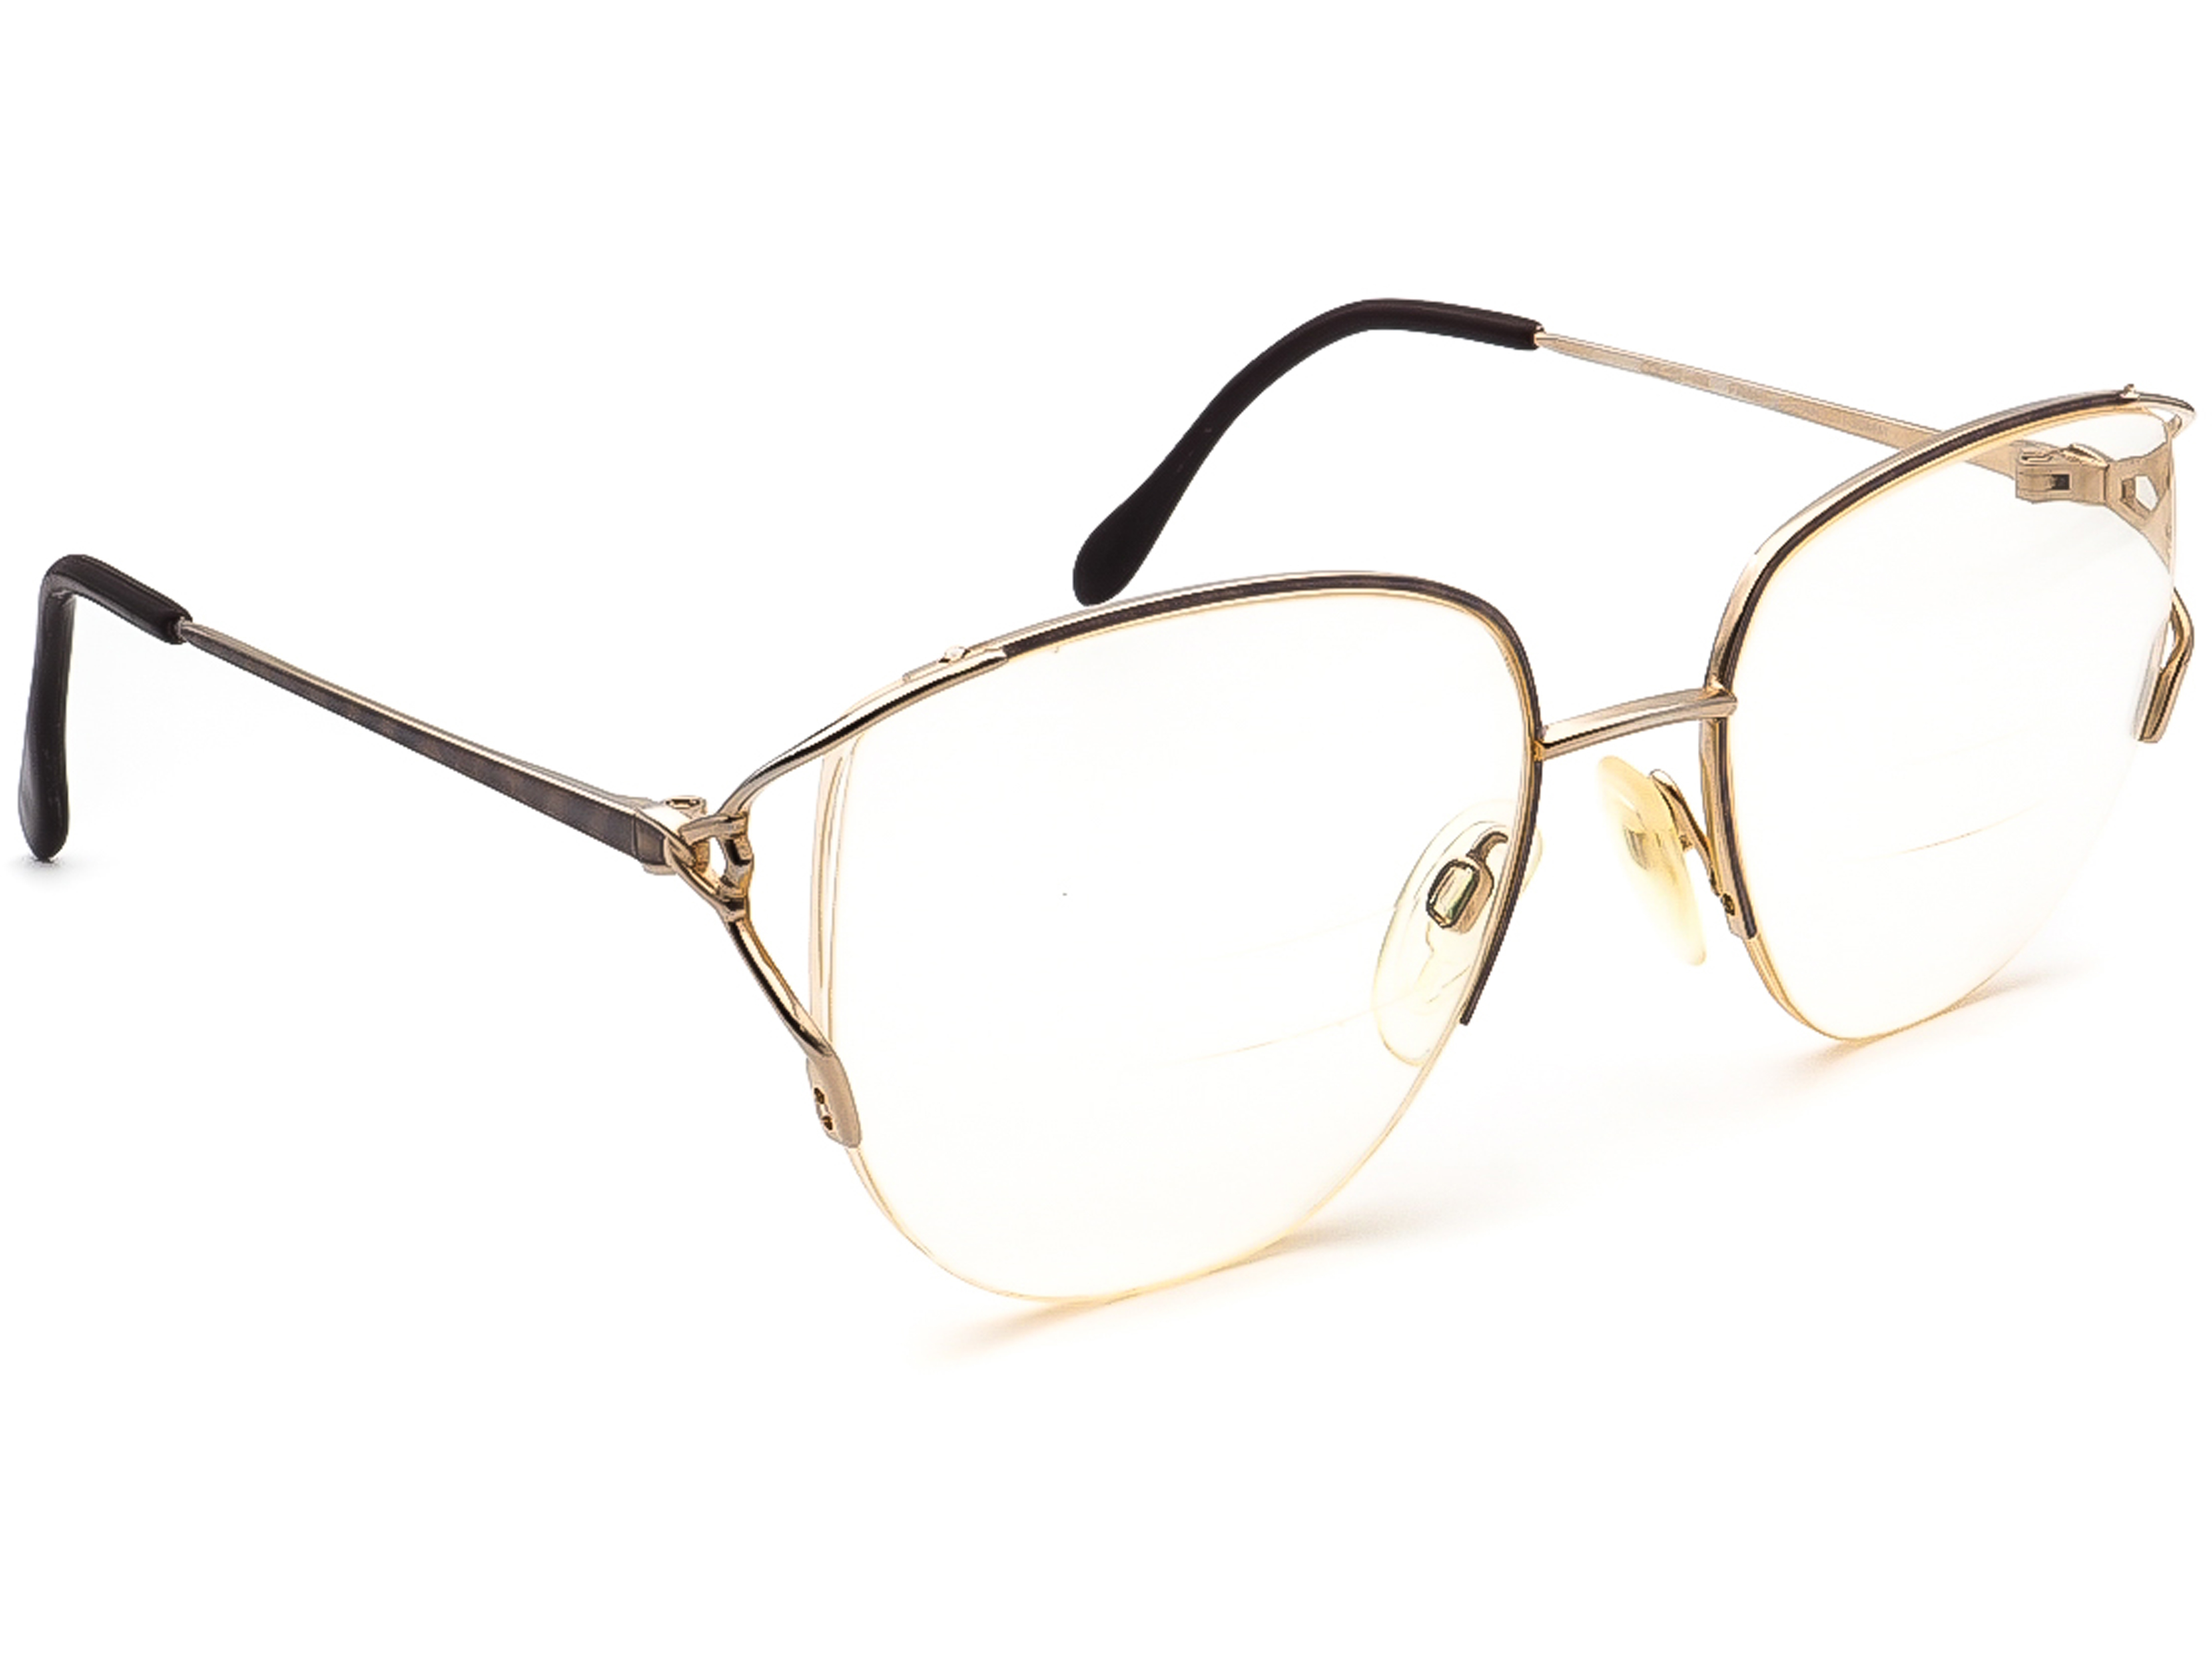 Charmant 442 Color- PR Oversized Eyeglasses